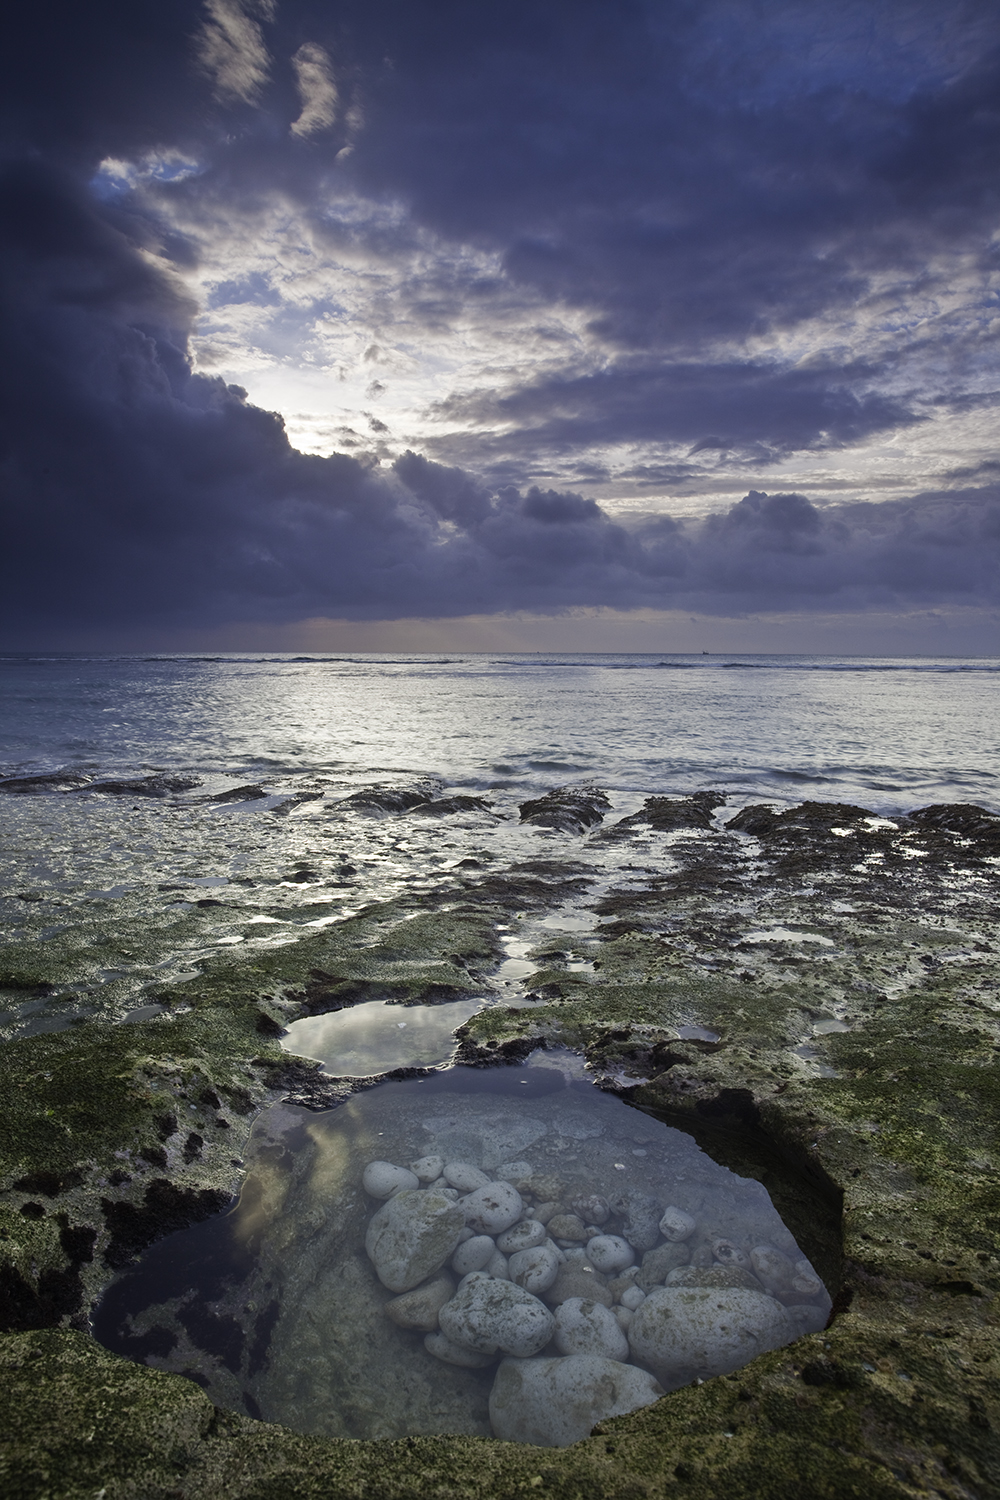 nature_Bali_rock_ocean_sunset_8027.jpg